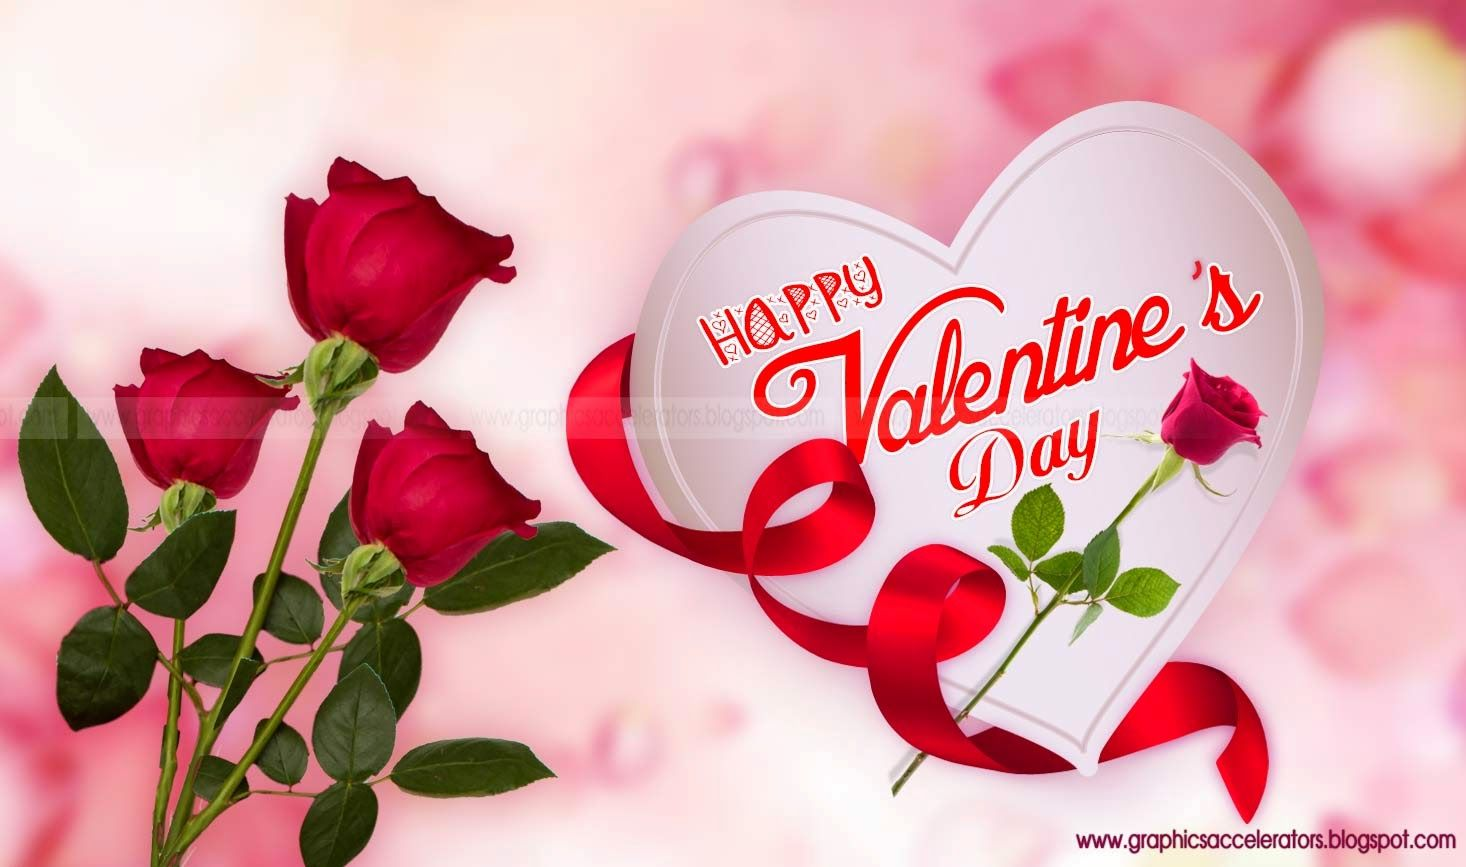 Happy valentines day white heart with roses bud greeting card romantic happy valentines day wishes for my boyfriend happy valentines day 2017 quotes wishes greetings messages sms sayings images cards pictures poems kristyandbryce Images